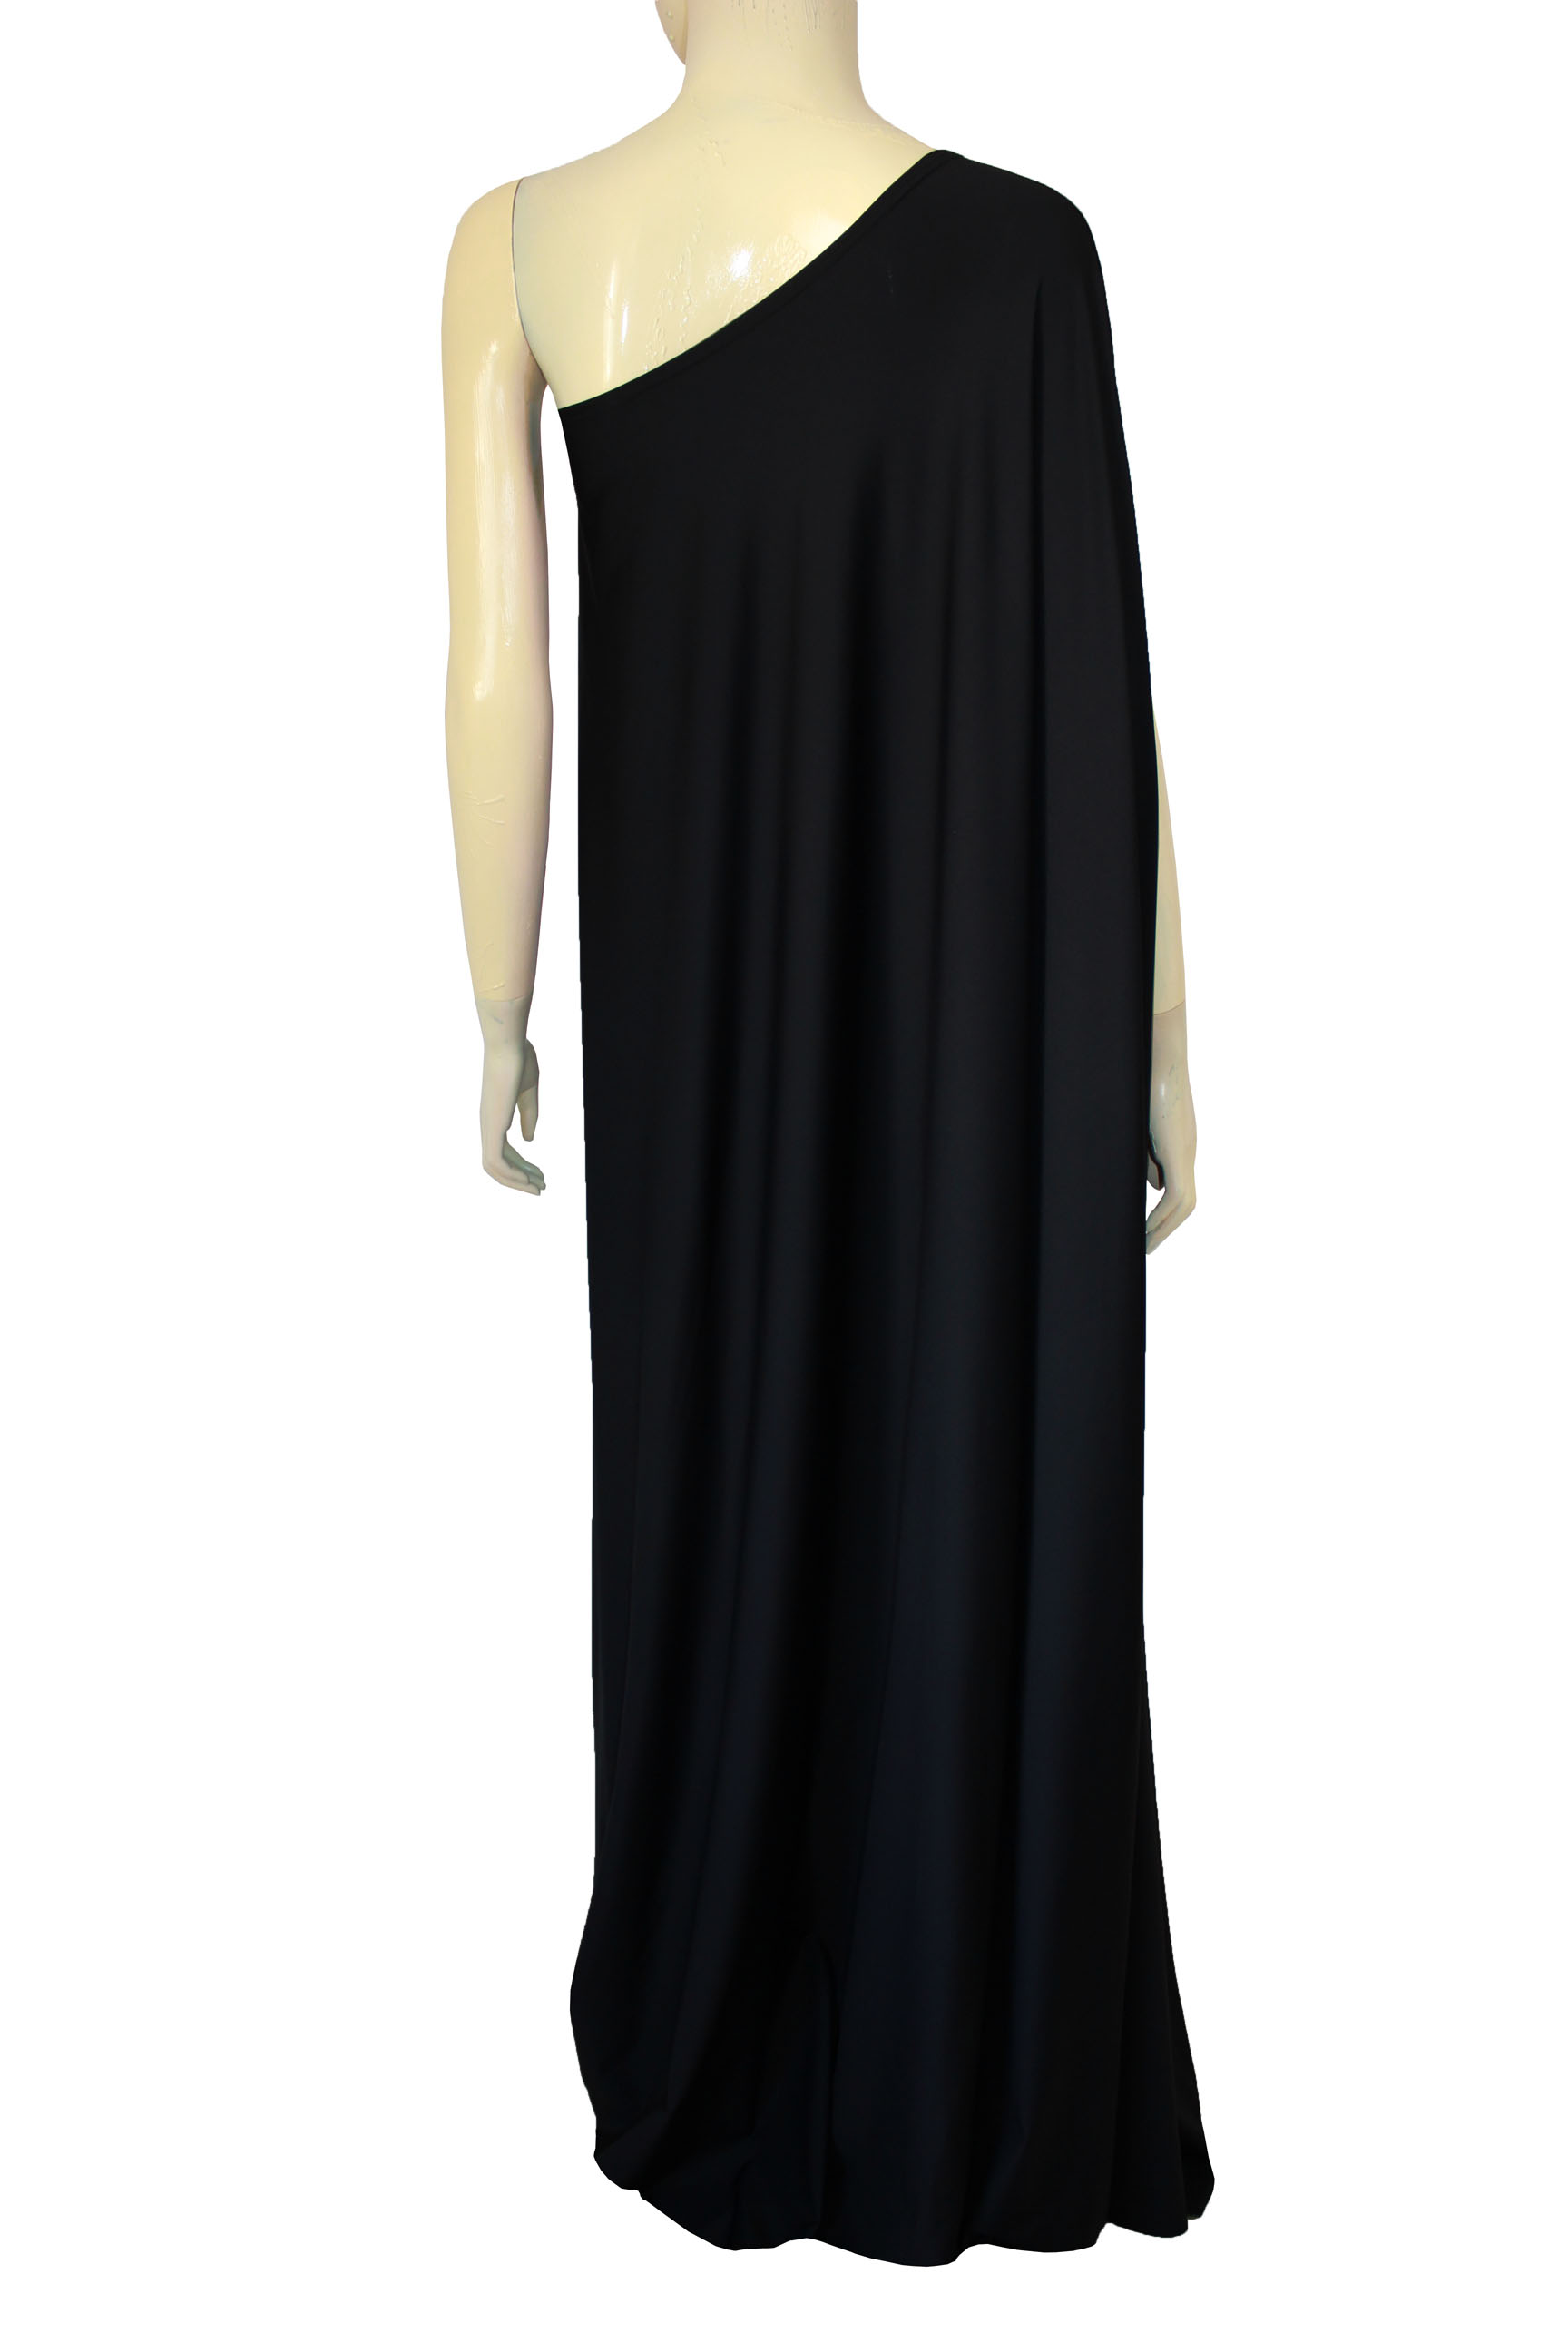 Plus size dress black long formal gown one shoulder maxi dress ...